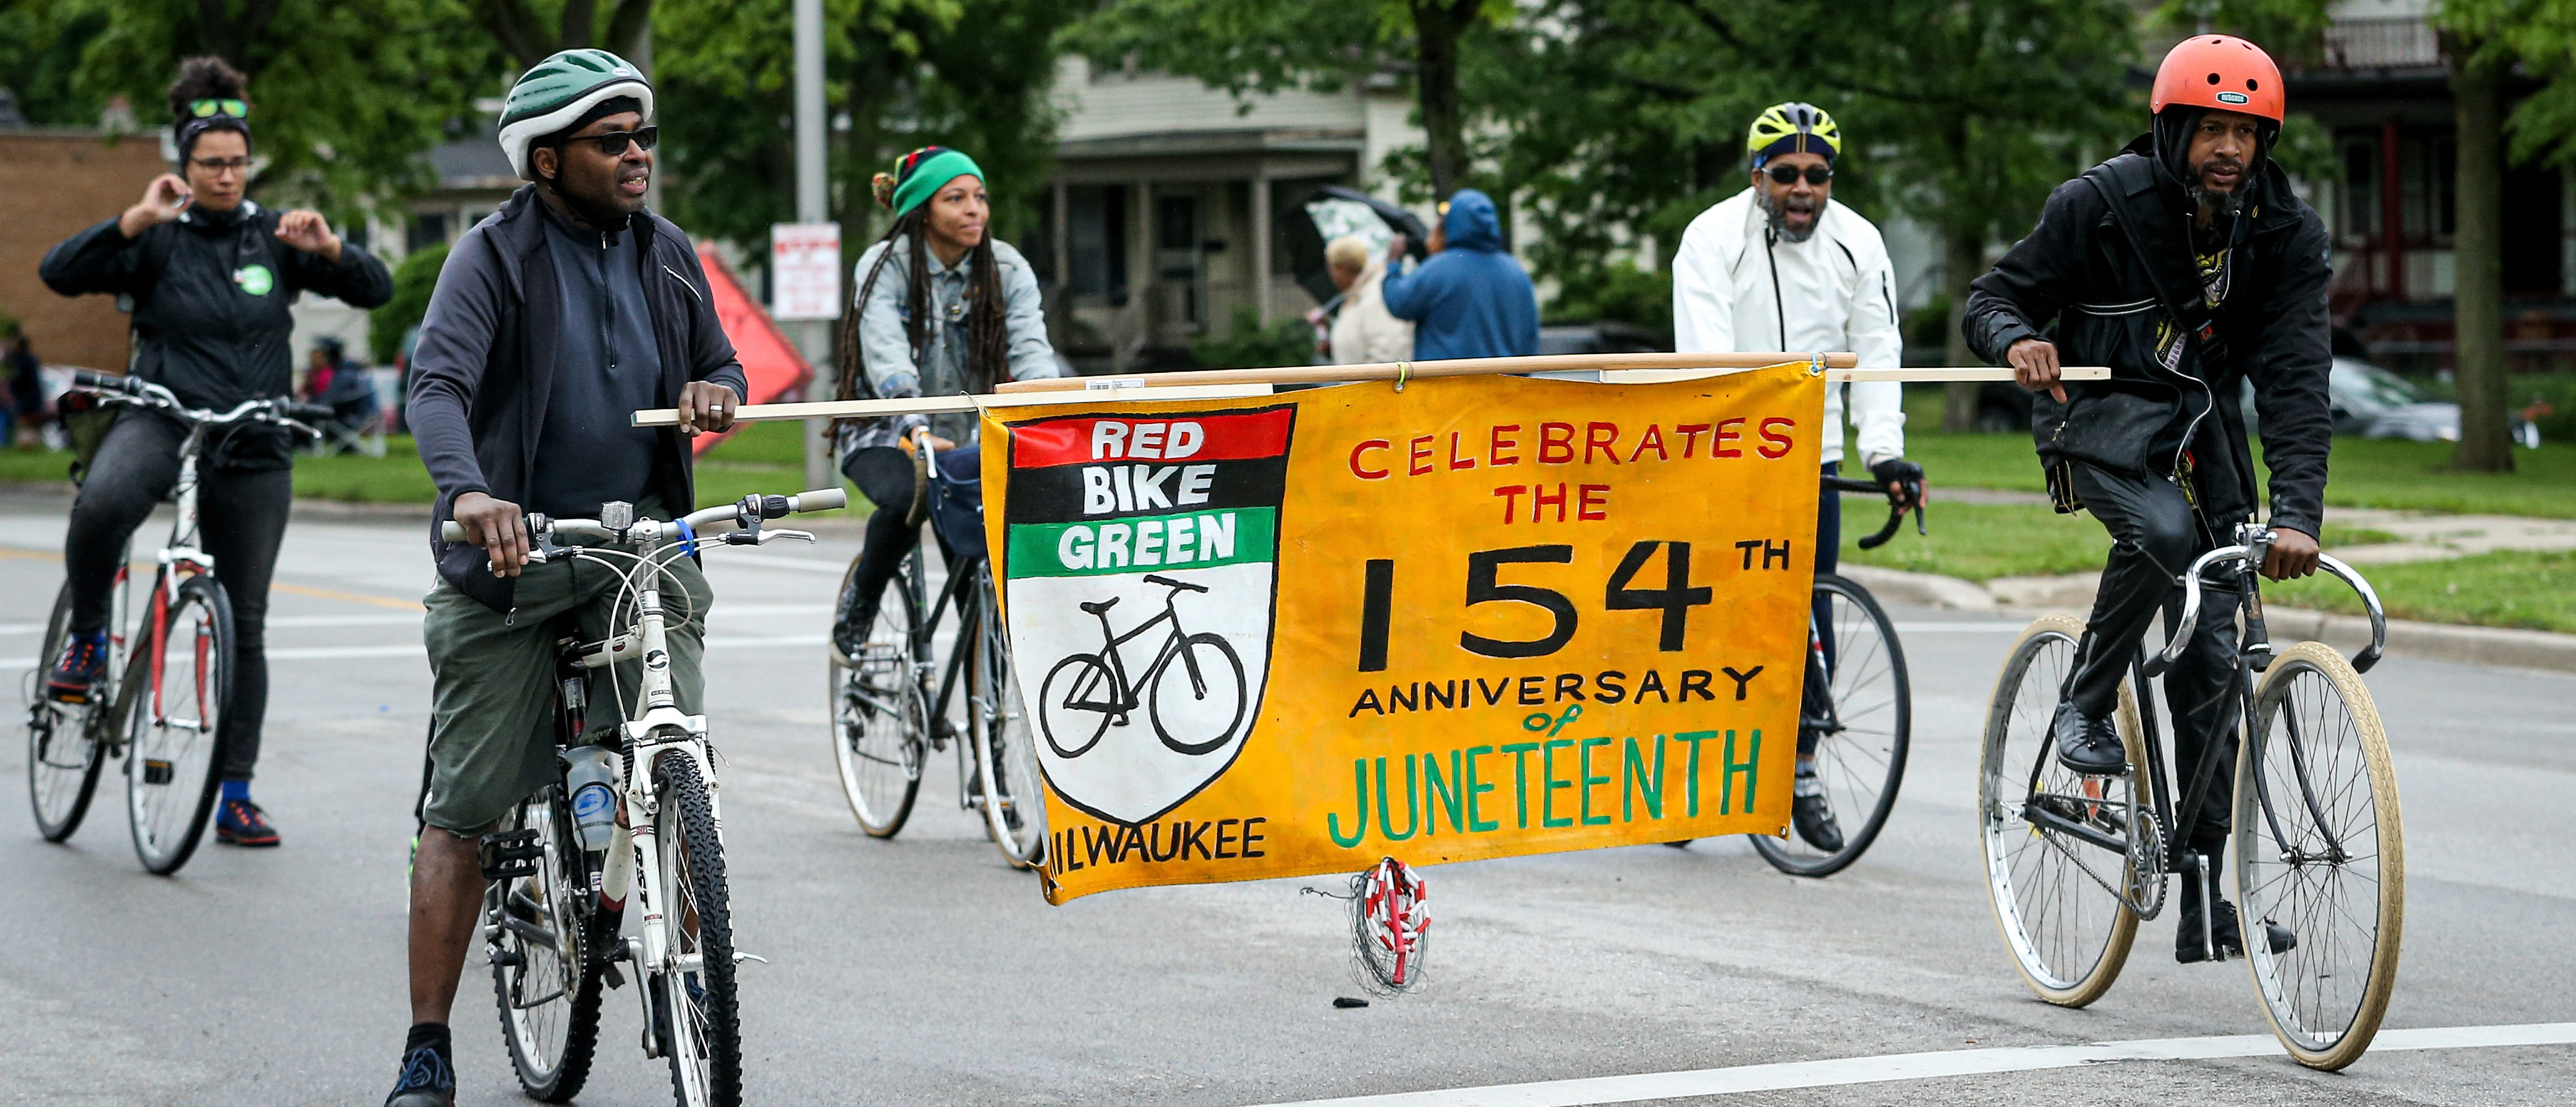 MILWAUKEE, WISCONSIN - JUNE 19: Members of the parade perform during the 48th Annual Juneteenth Day Festival on June 19, 2019 in Milwaukee, Wisconsin. (Photo by Dylan Buell/Getty Images for VIBE)